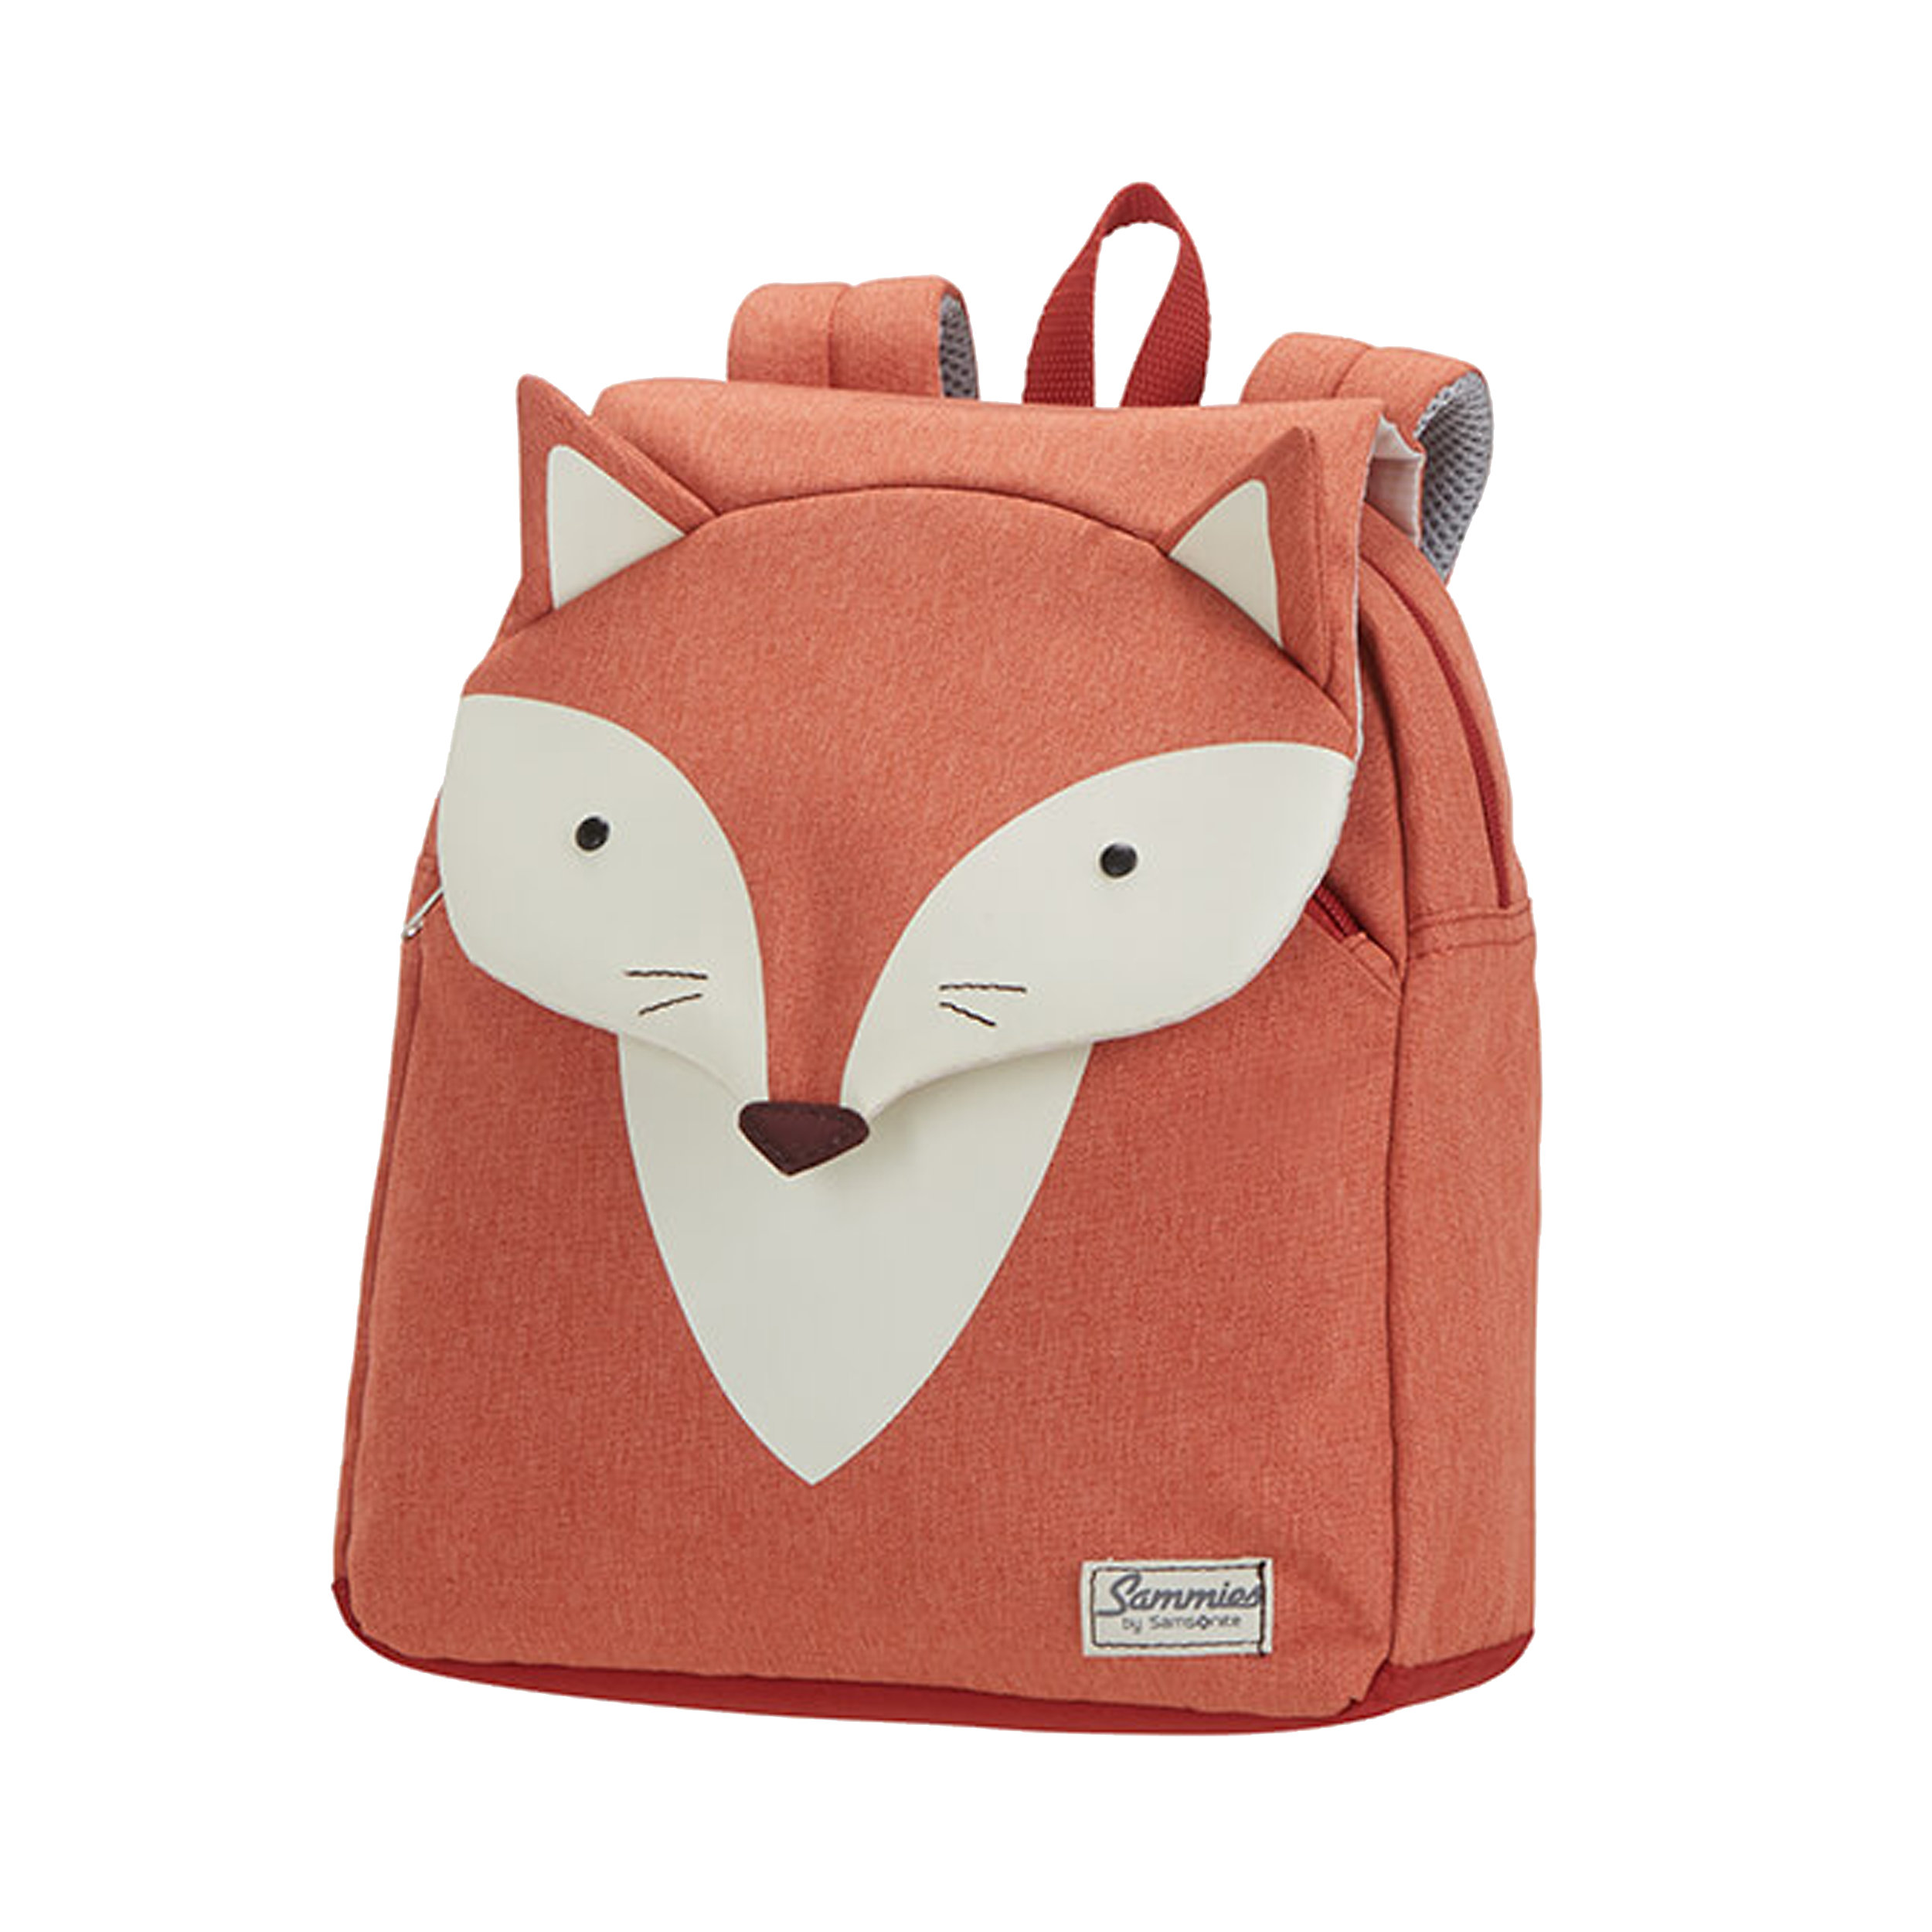 Kinderrucksack S Fox William Happy Sammies 7.5 Liter